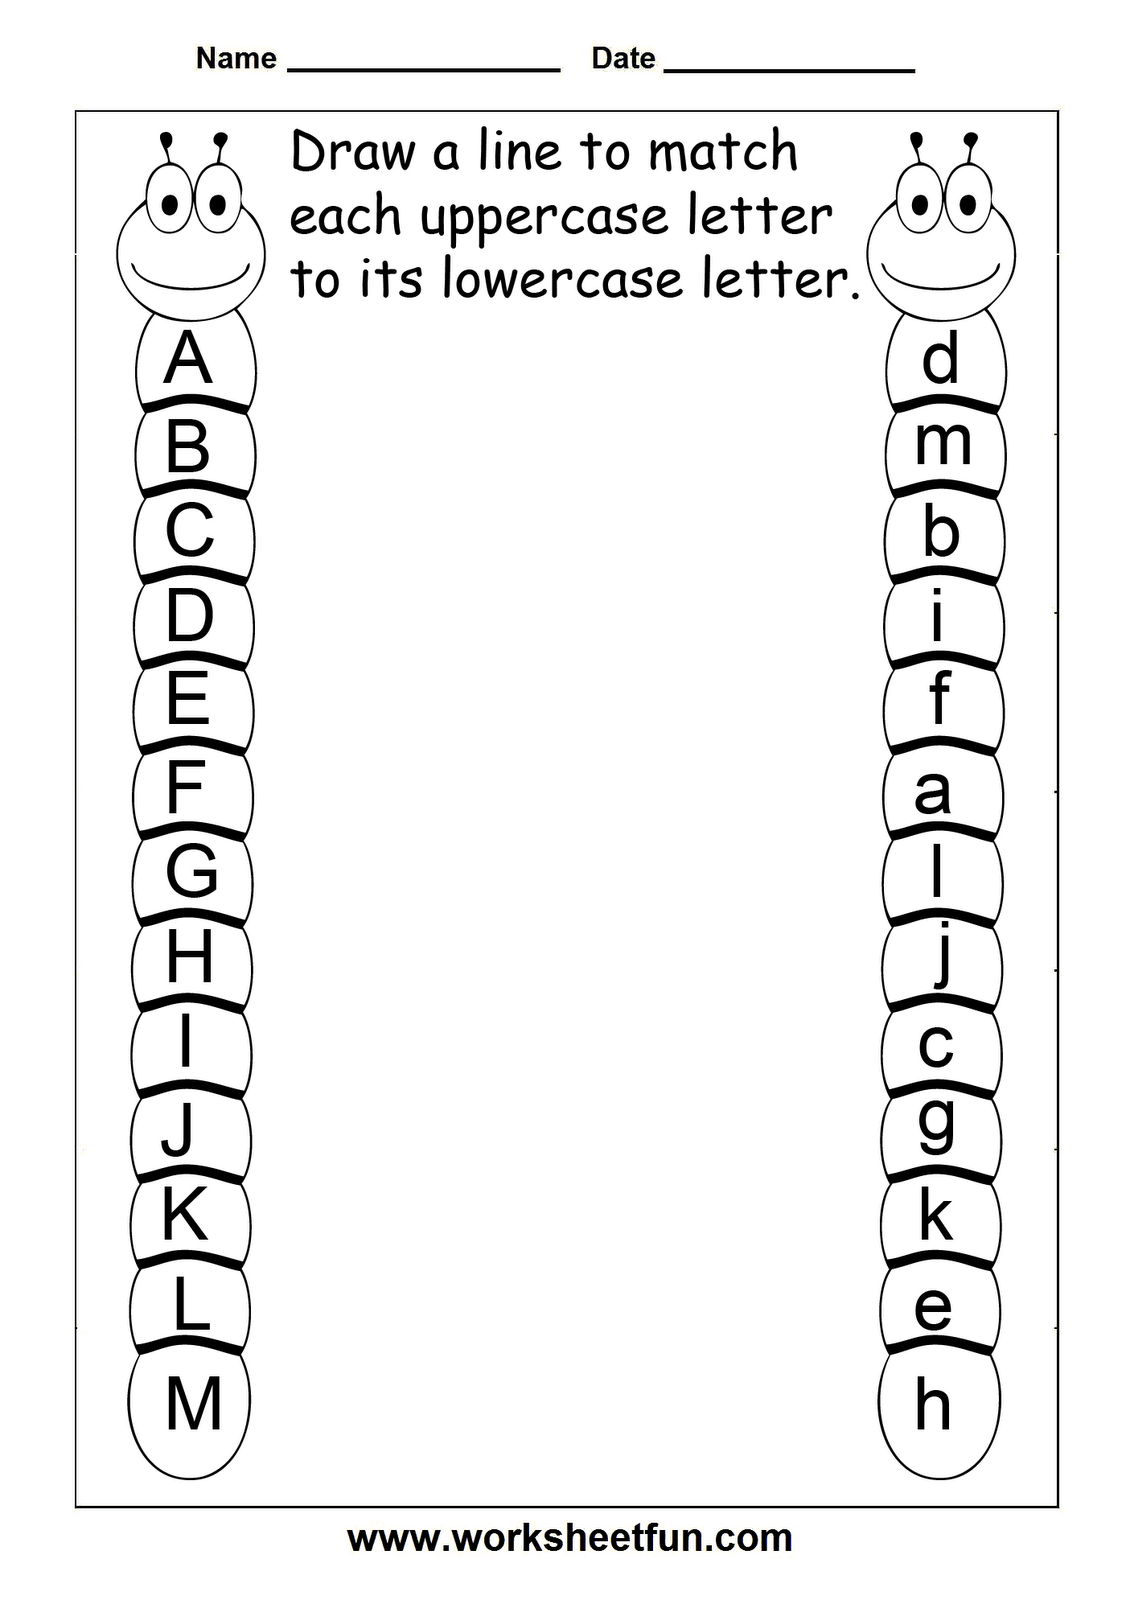 Free Worksheet Letters And Sounds Worksheets 17 best images about reading worksheets coloring on pinterest sentences alphabet letters to print and abc pages